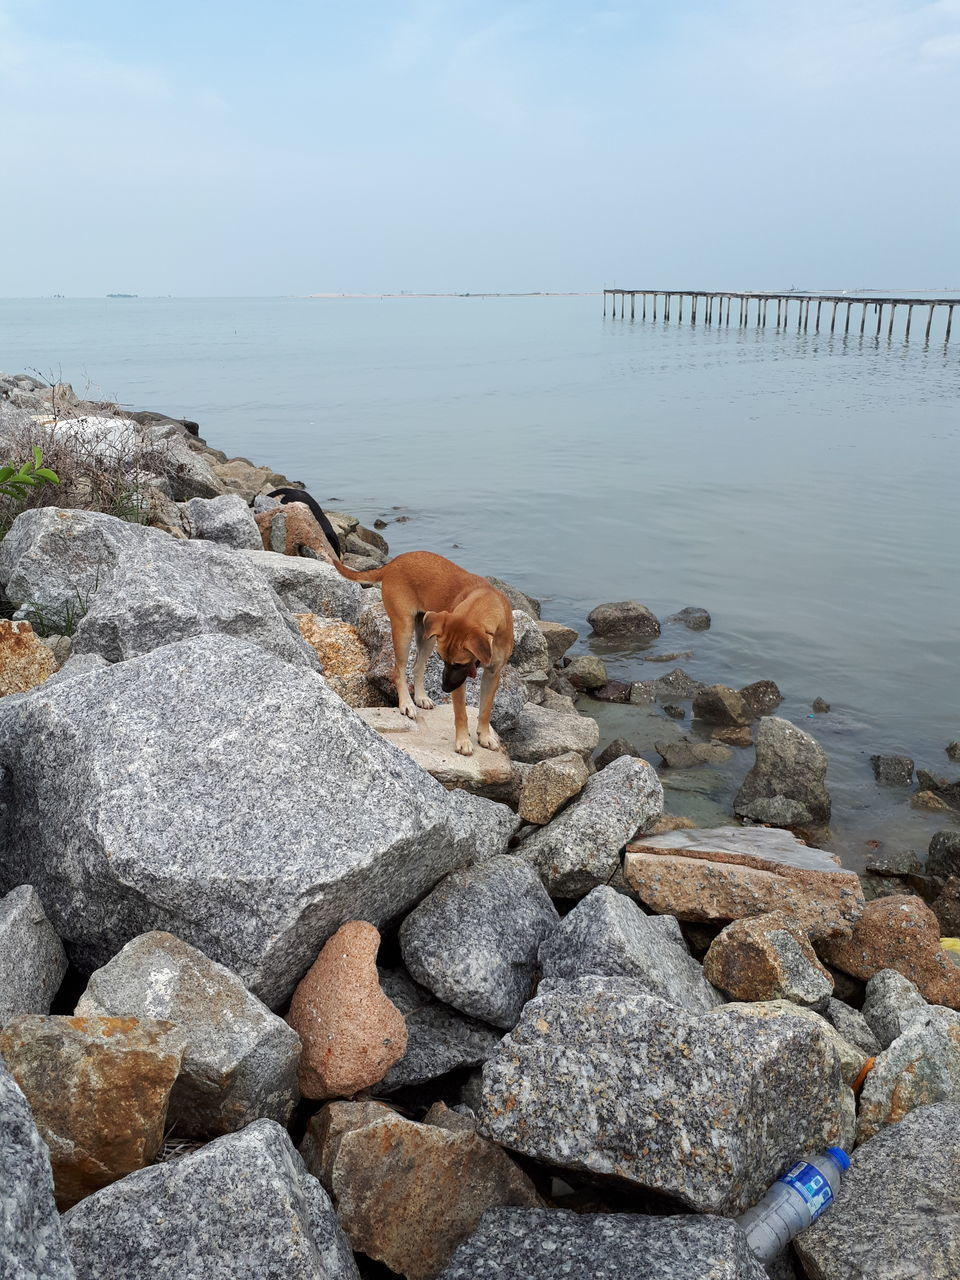 sea, water, rock - object, animal themes, nature, horizon over water, mammal, one animal, domestic animals, dog, day, sky, outdoors, beauty in nature, no people, pets, tranquility, standing, scenics